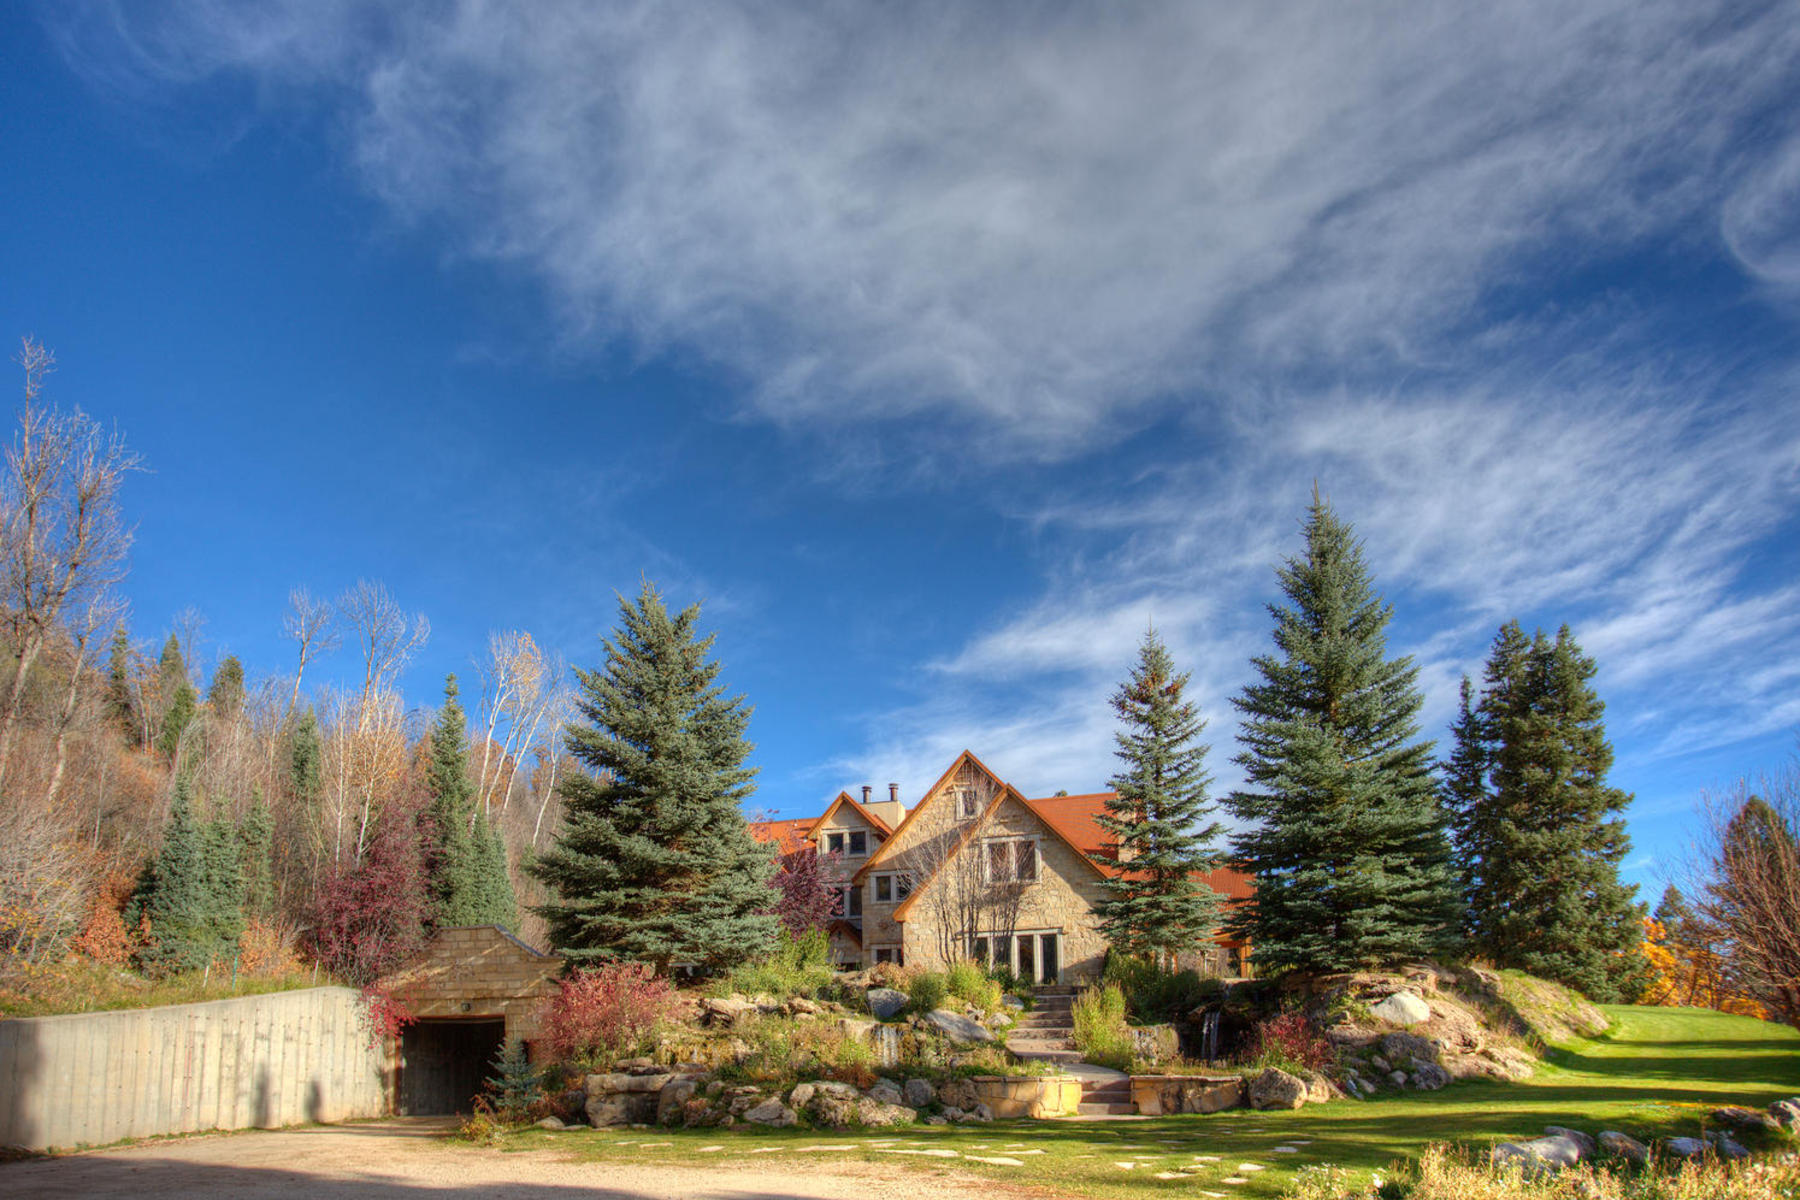 Maison unifamiliale pour l Vente à Stone Hill Mountain Retreat 2590 W Snake Creek Rd Midway, Utah 84049 États-Unis